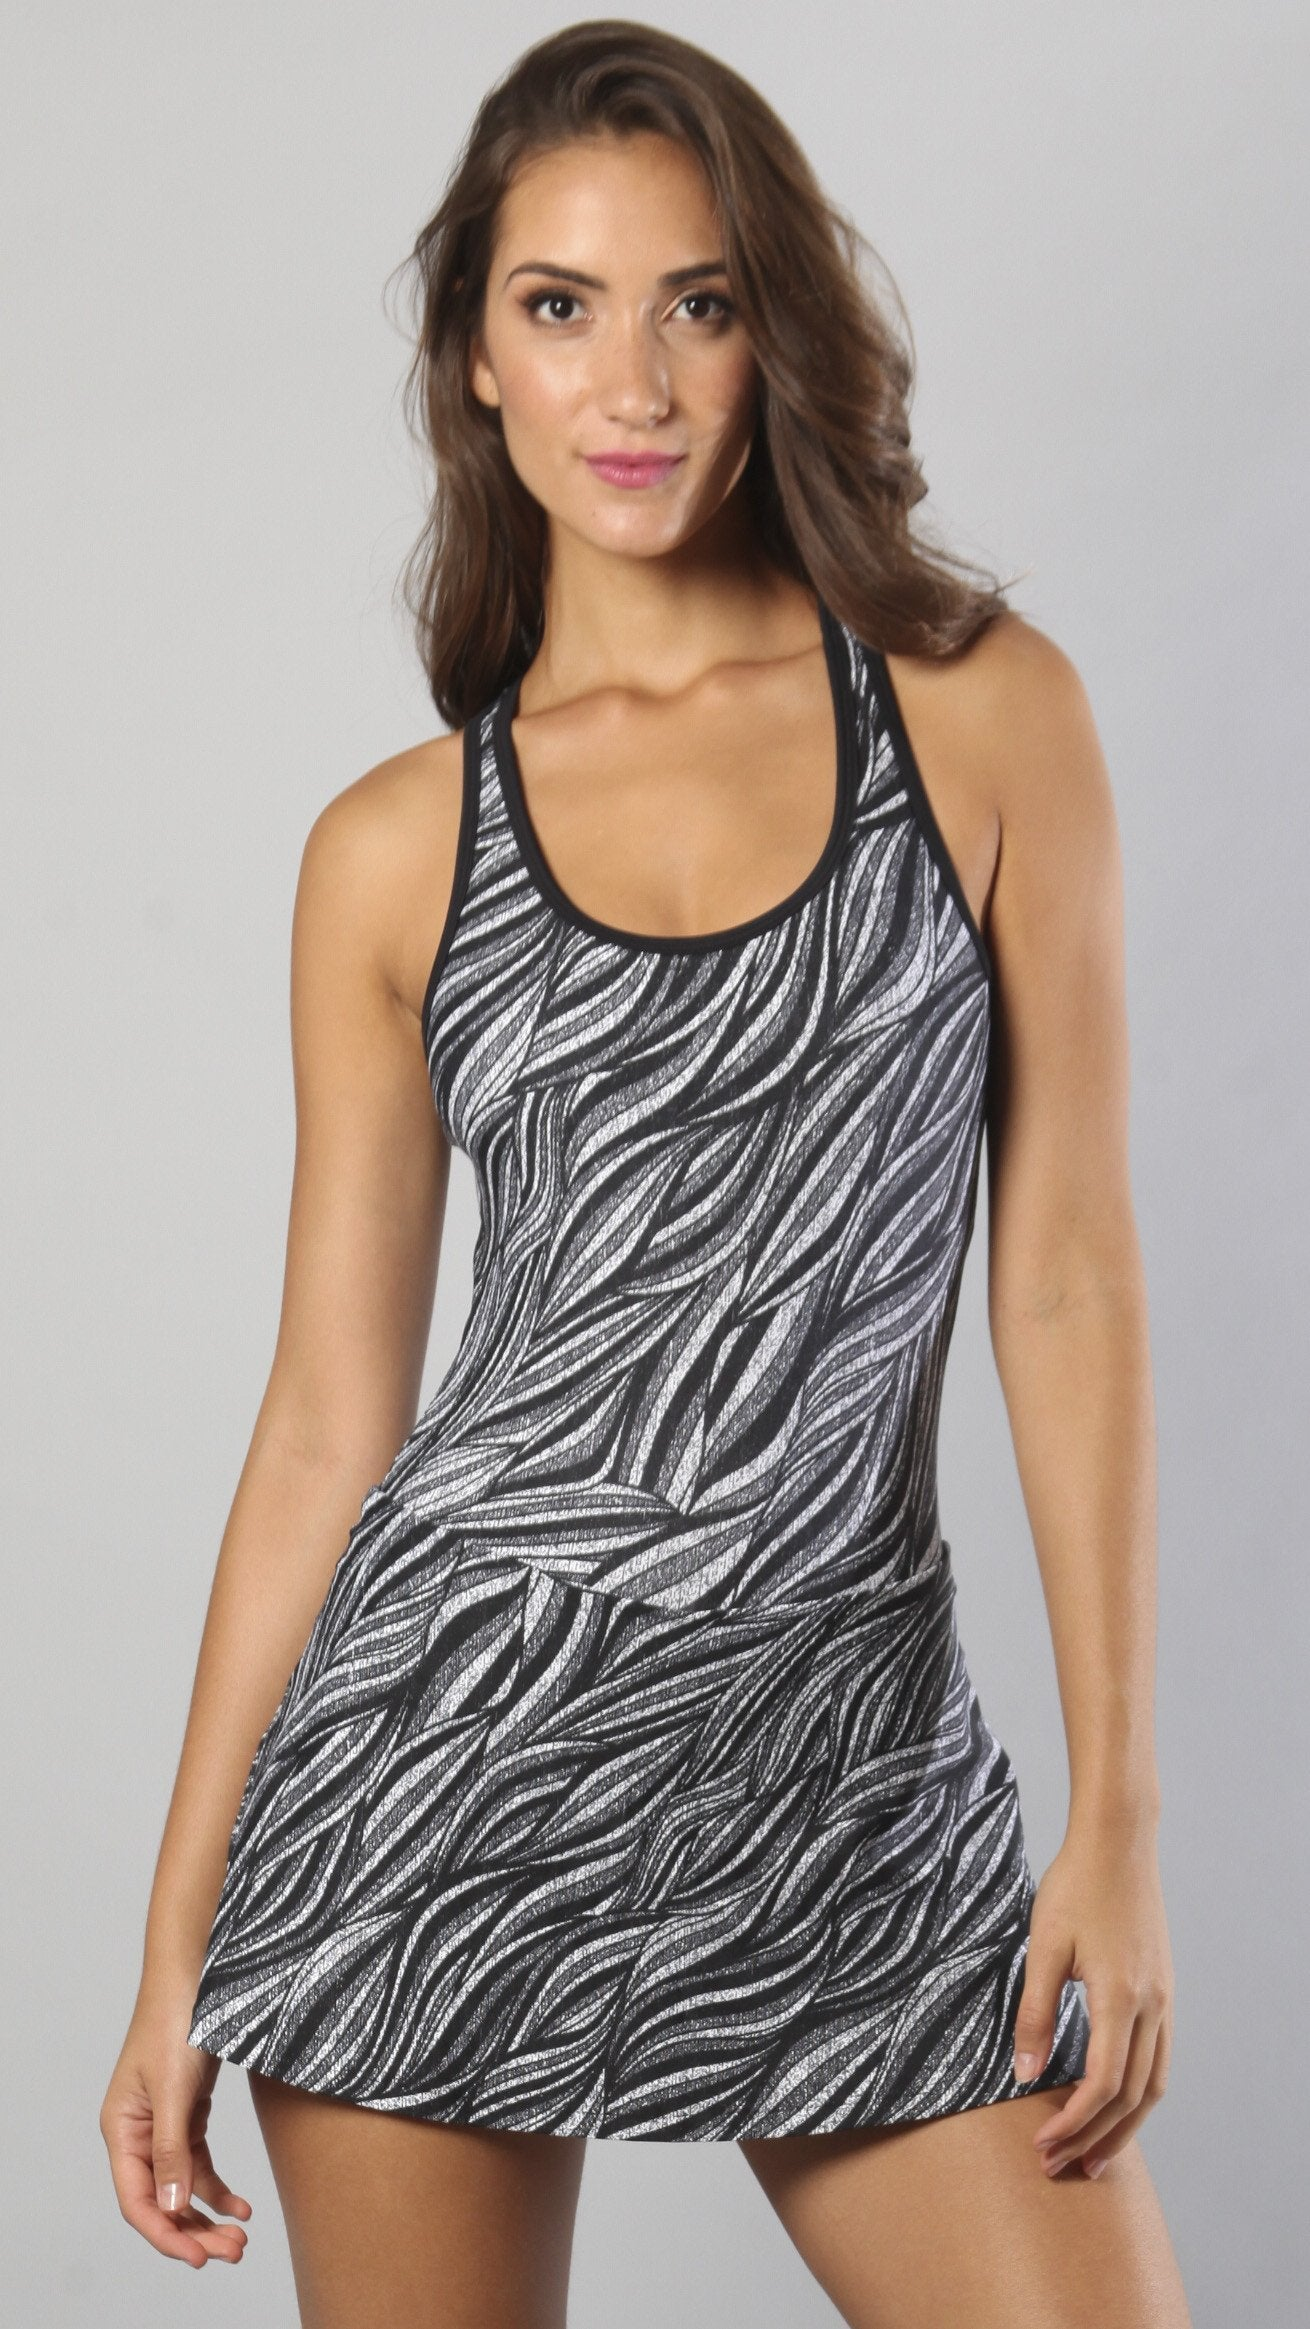 Designer Black and Charcoal Long Tank Top M653 - Equilibrium Activewear - Image 1